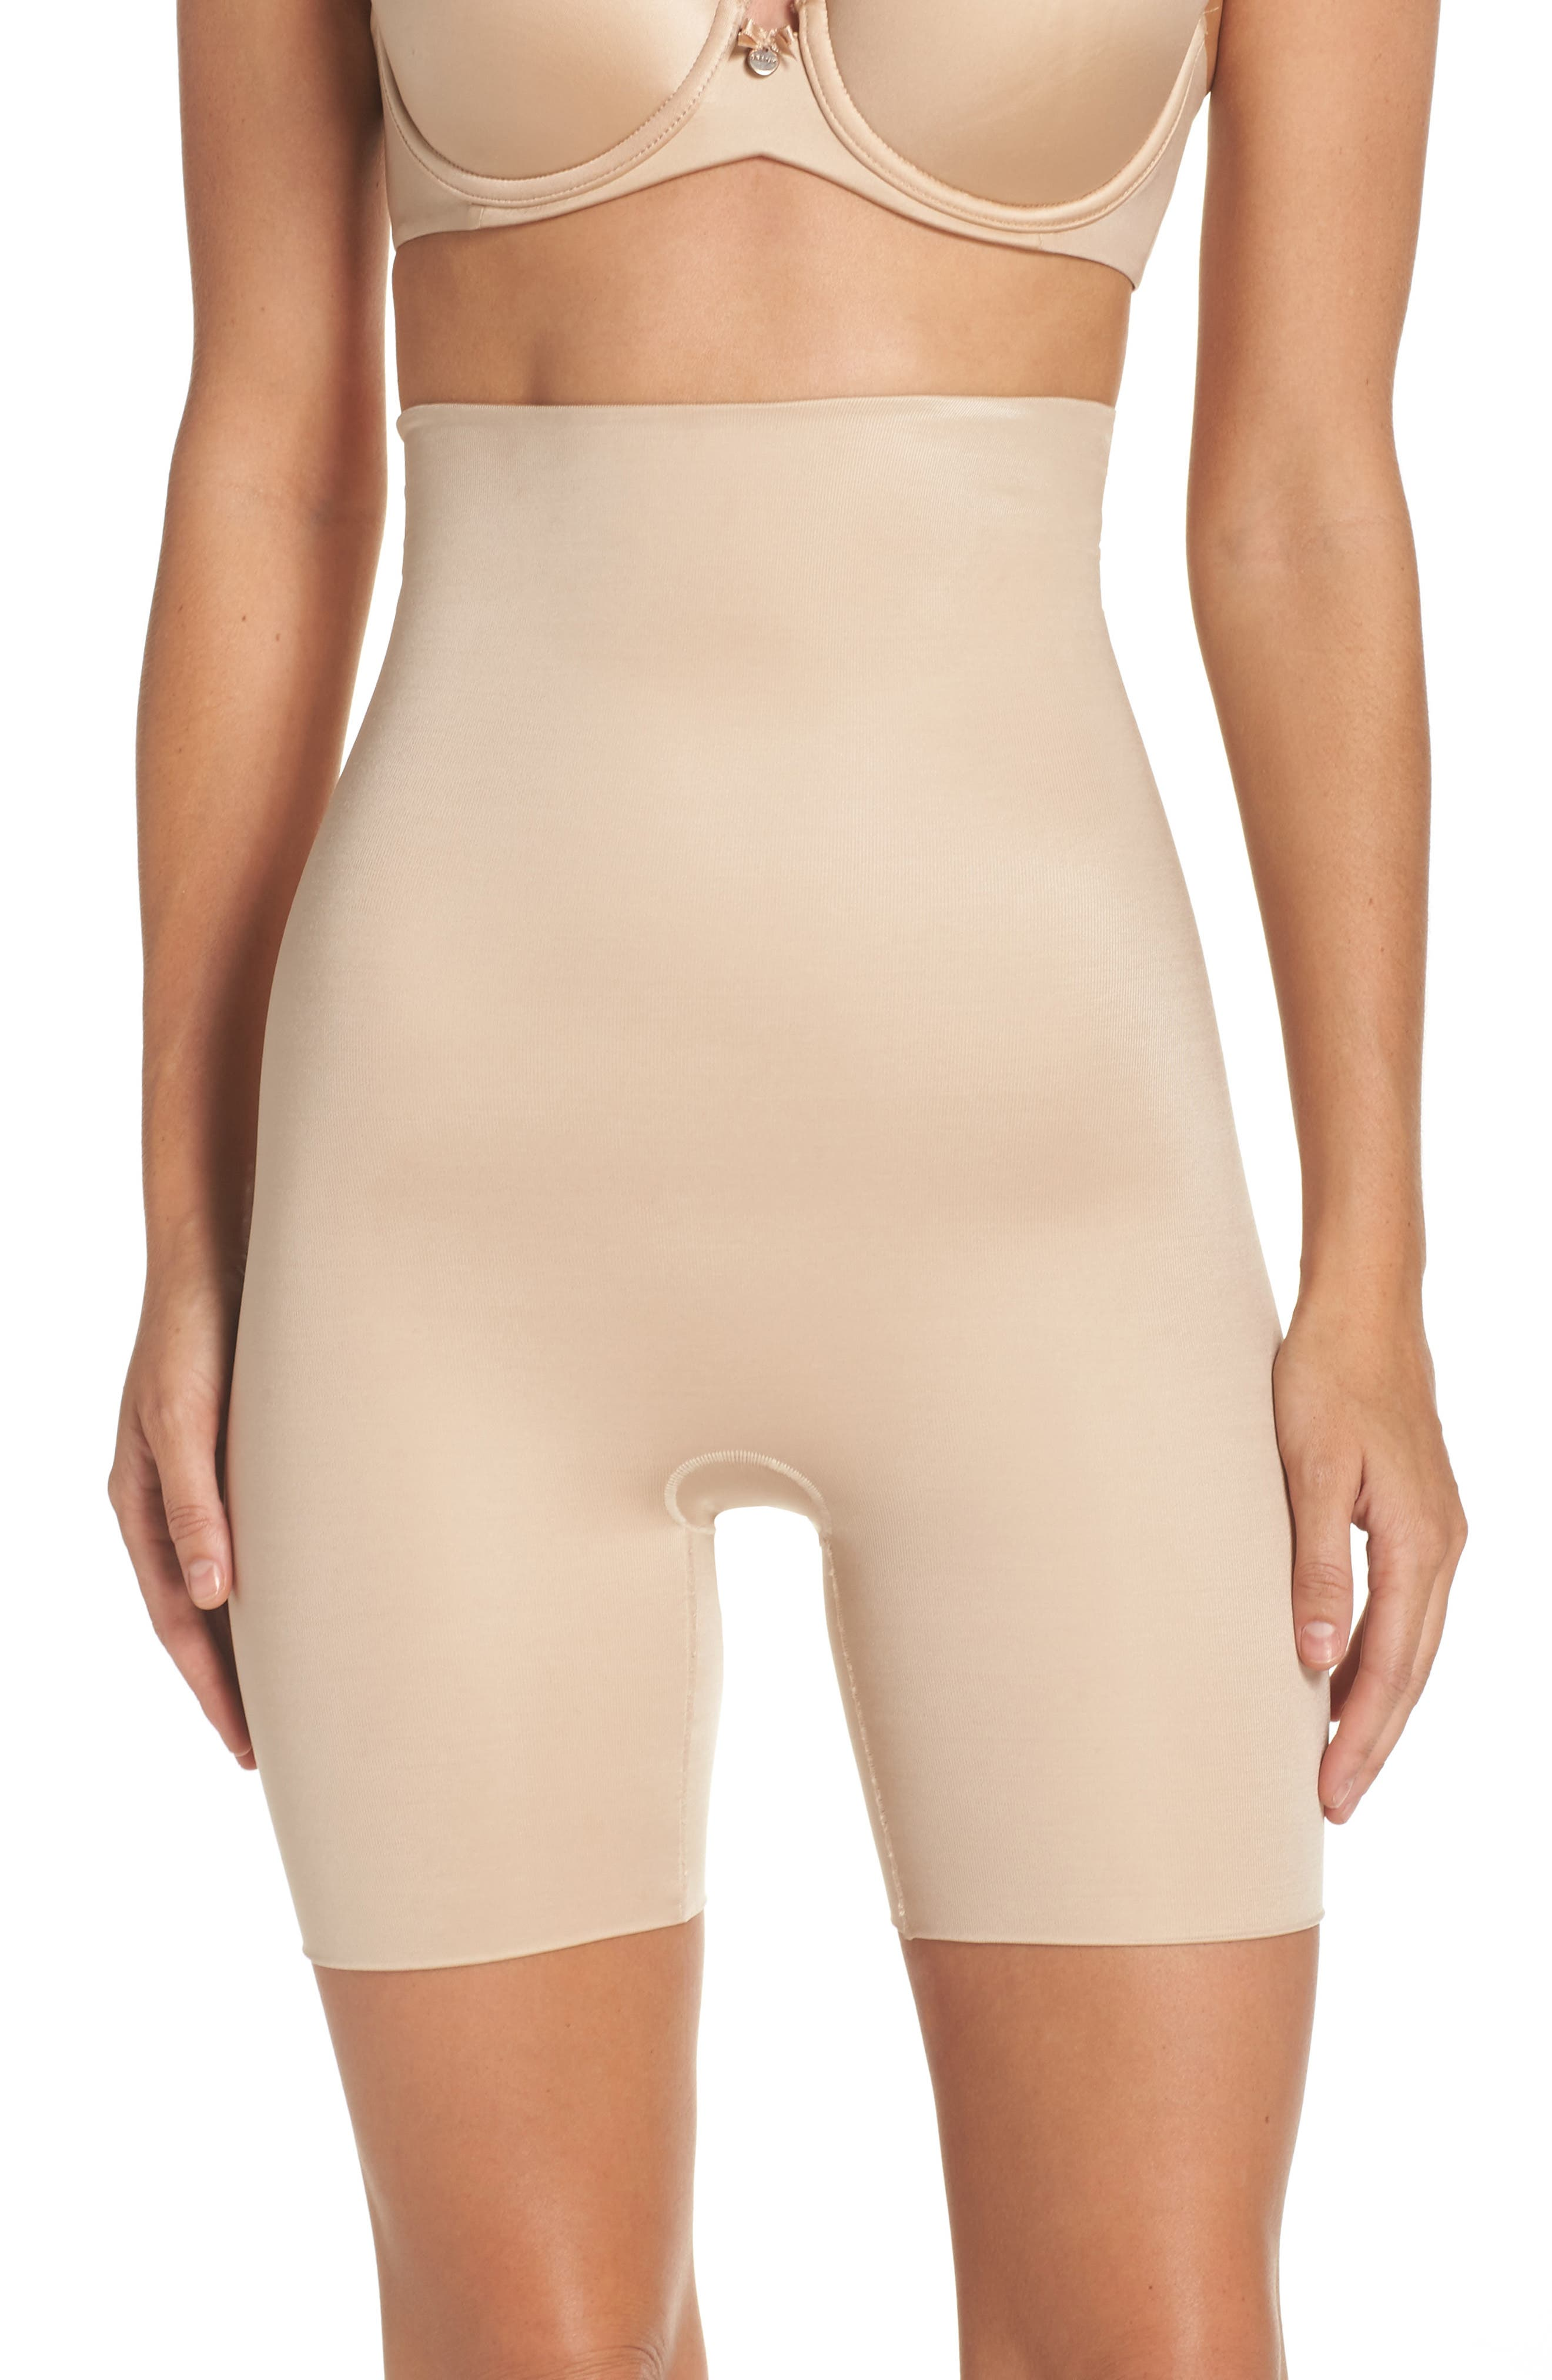 Alternate Image 1 Selected - SPANX® Power Conceal-Her High Waist Shaping Shorts